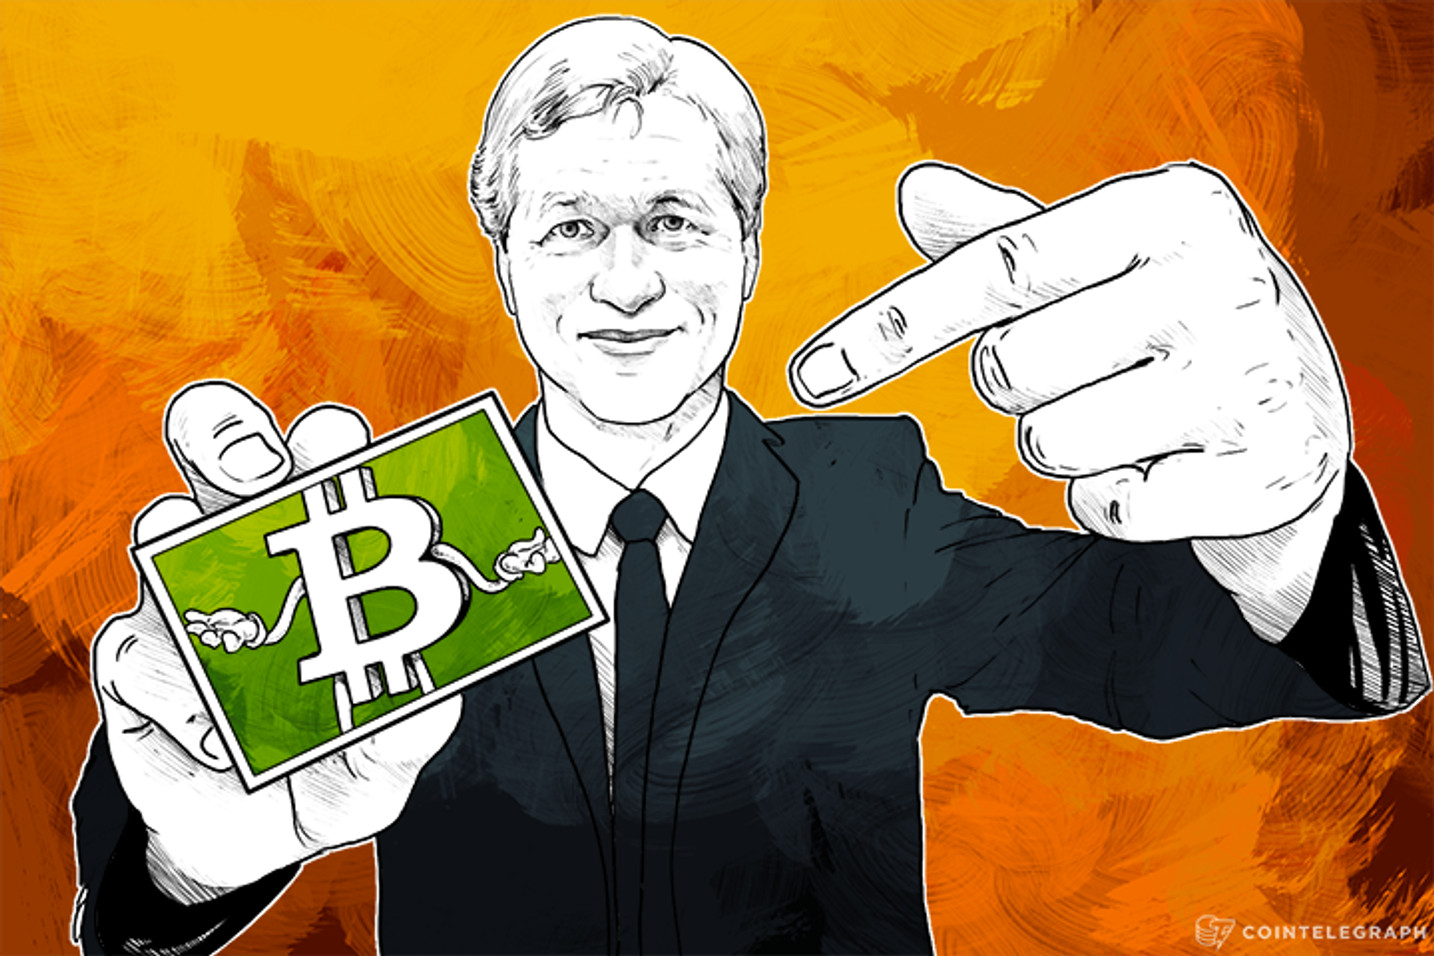 JP Morgan CEO: We Will Compete with Bitcoin Startups 'Partnering Where It Makes Sense'